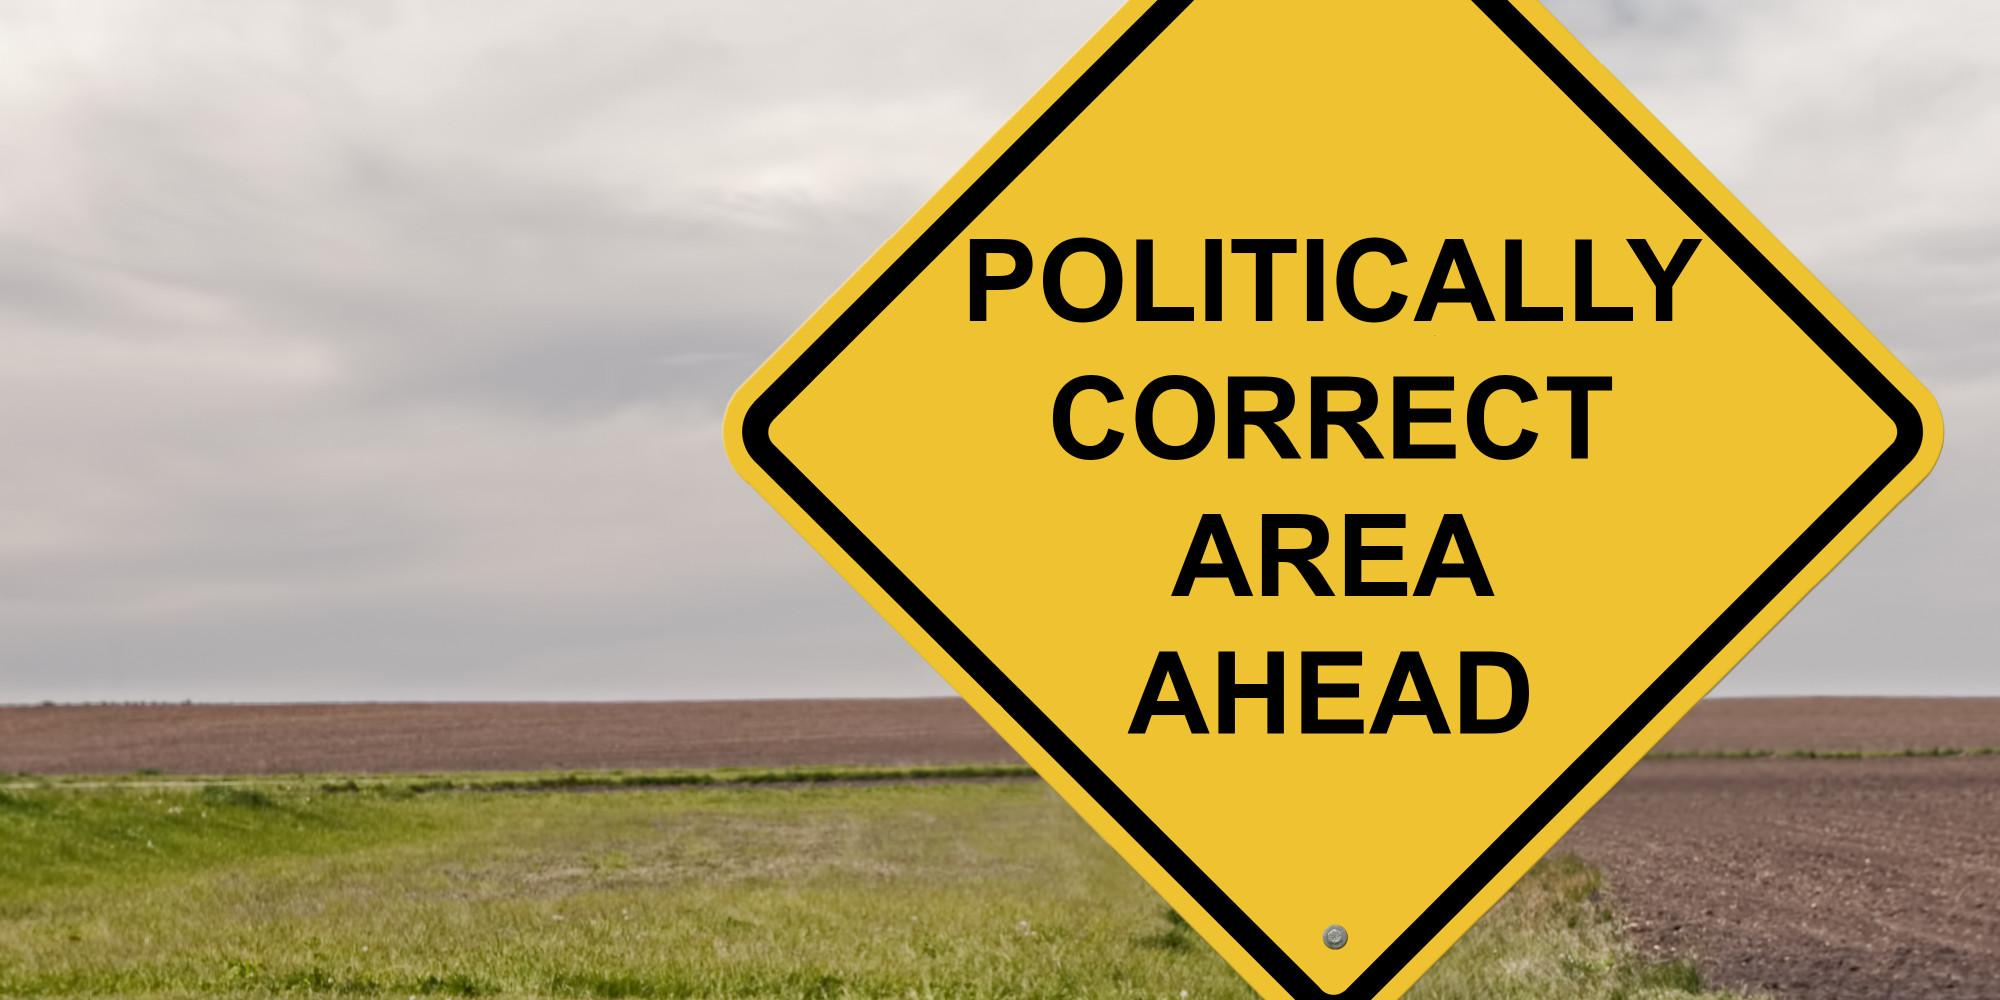 Caution - Politically Correct Area Ahead